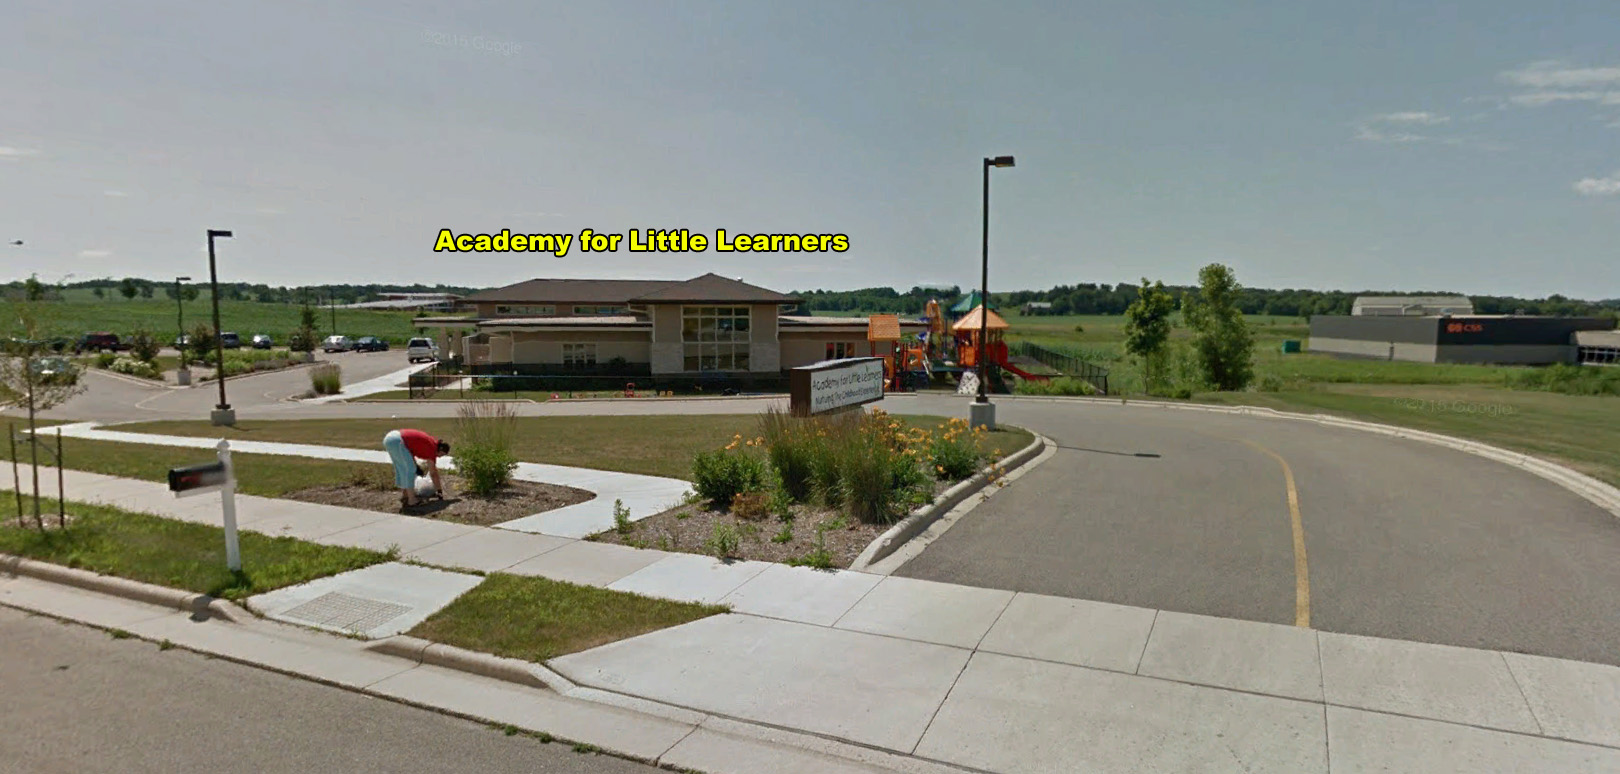 Academy For Little Learners 2007 & 2012